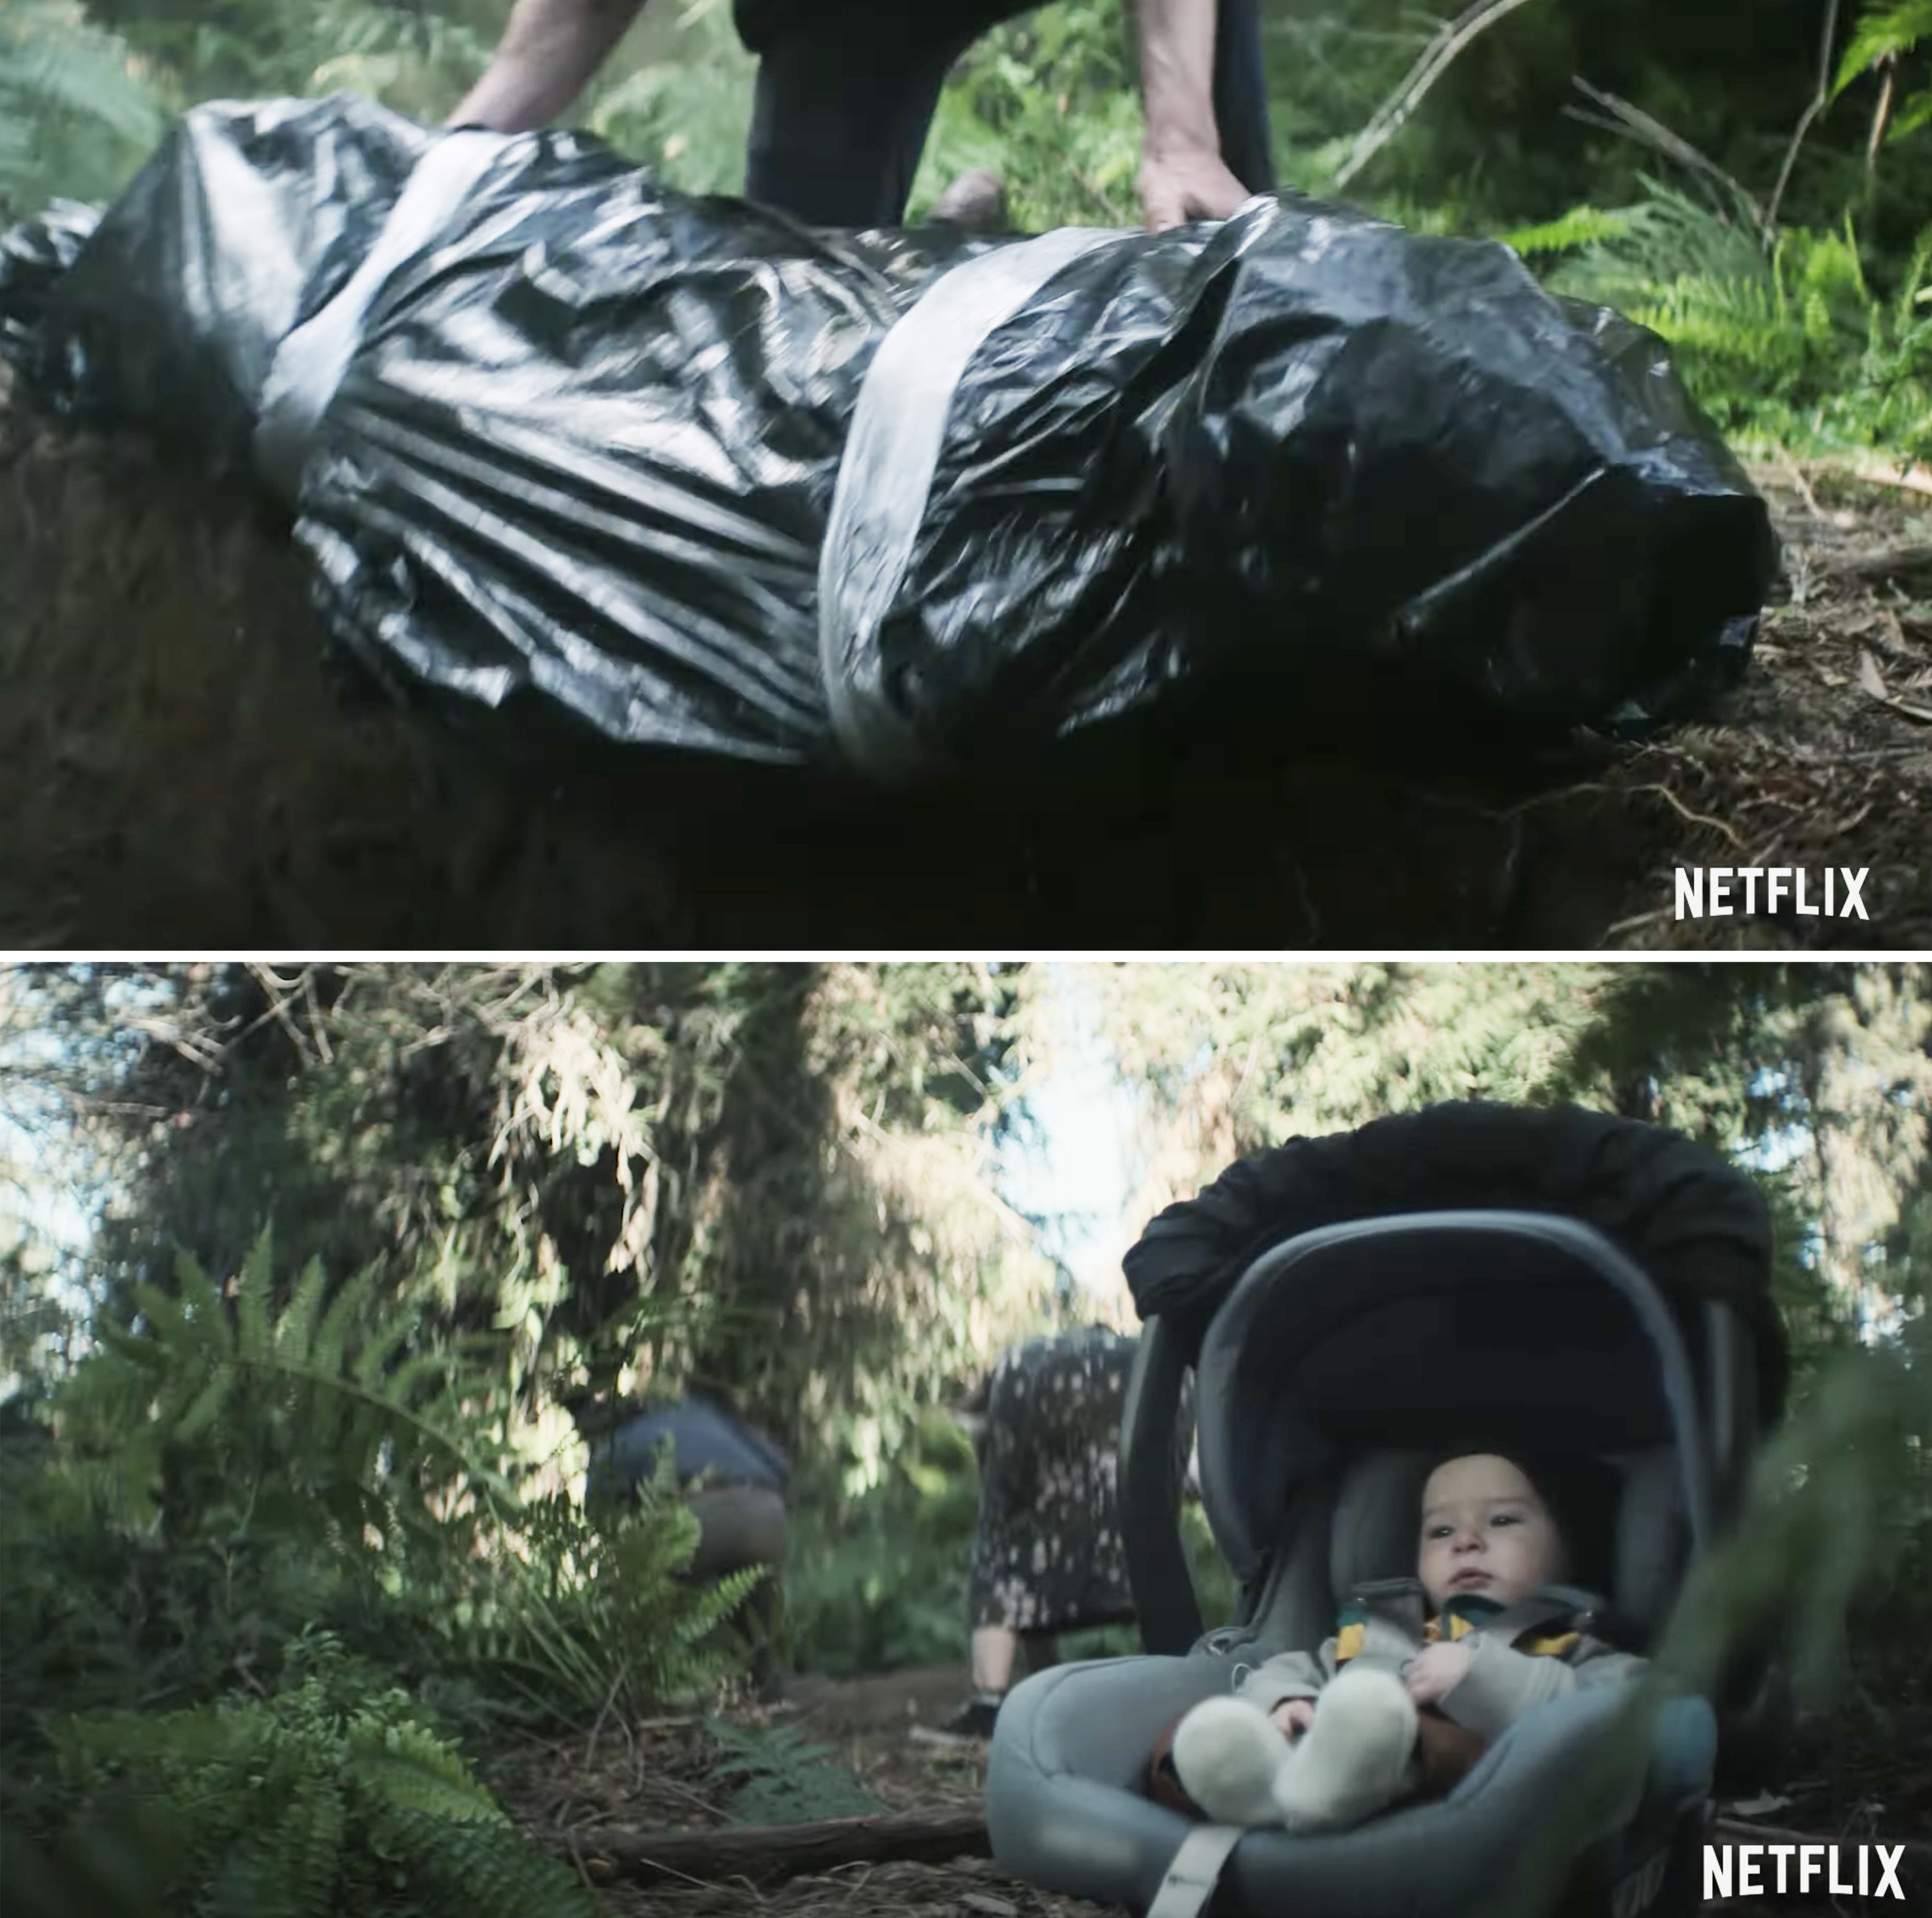 A body bag in the first image and the baby in a carseat on the ground as someone digs a hole in the background in the second image